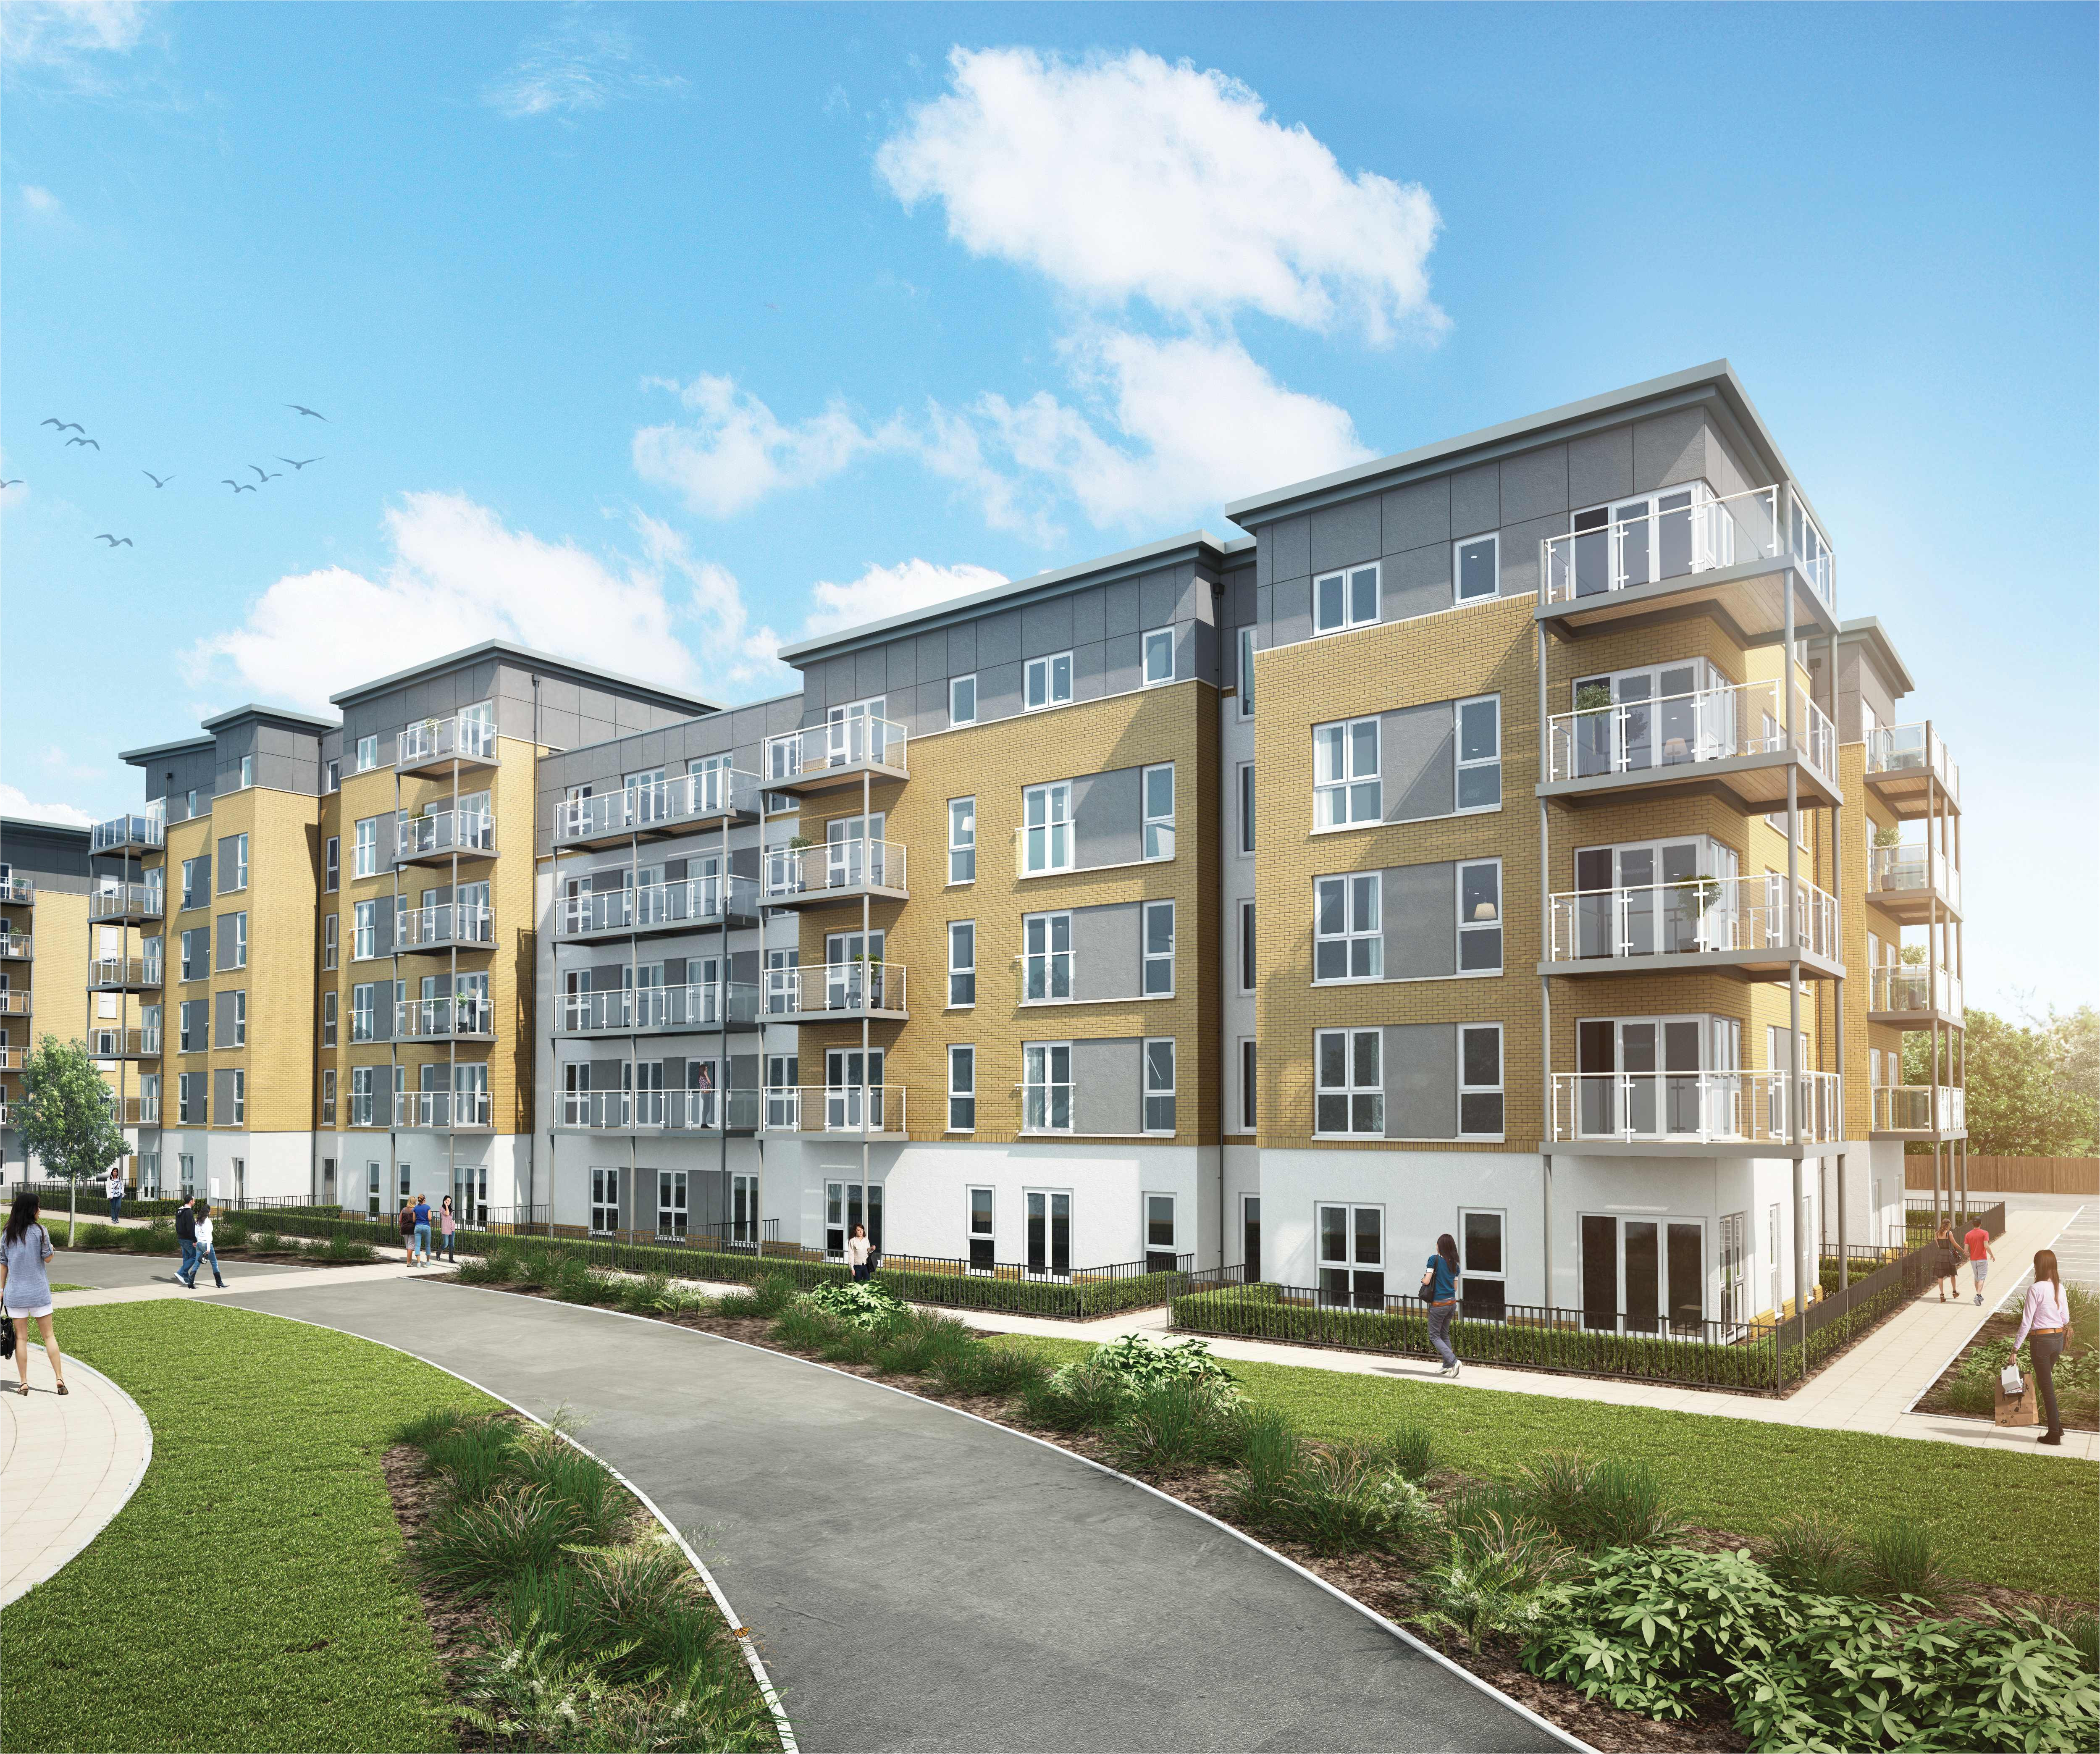 Rent to Own Homes In London Ky Coming soon Help to Buy London at Drayton Garden Village